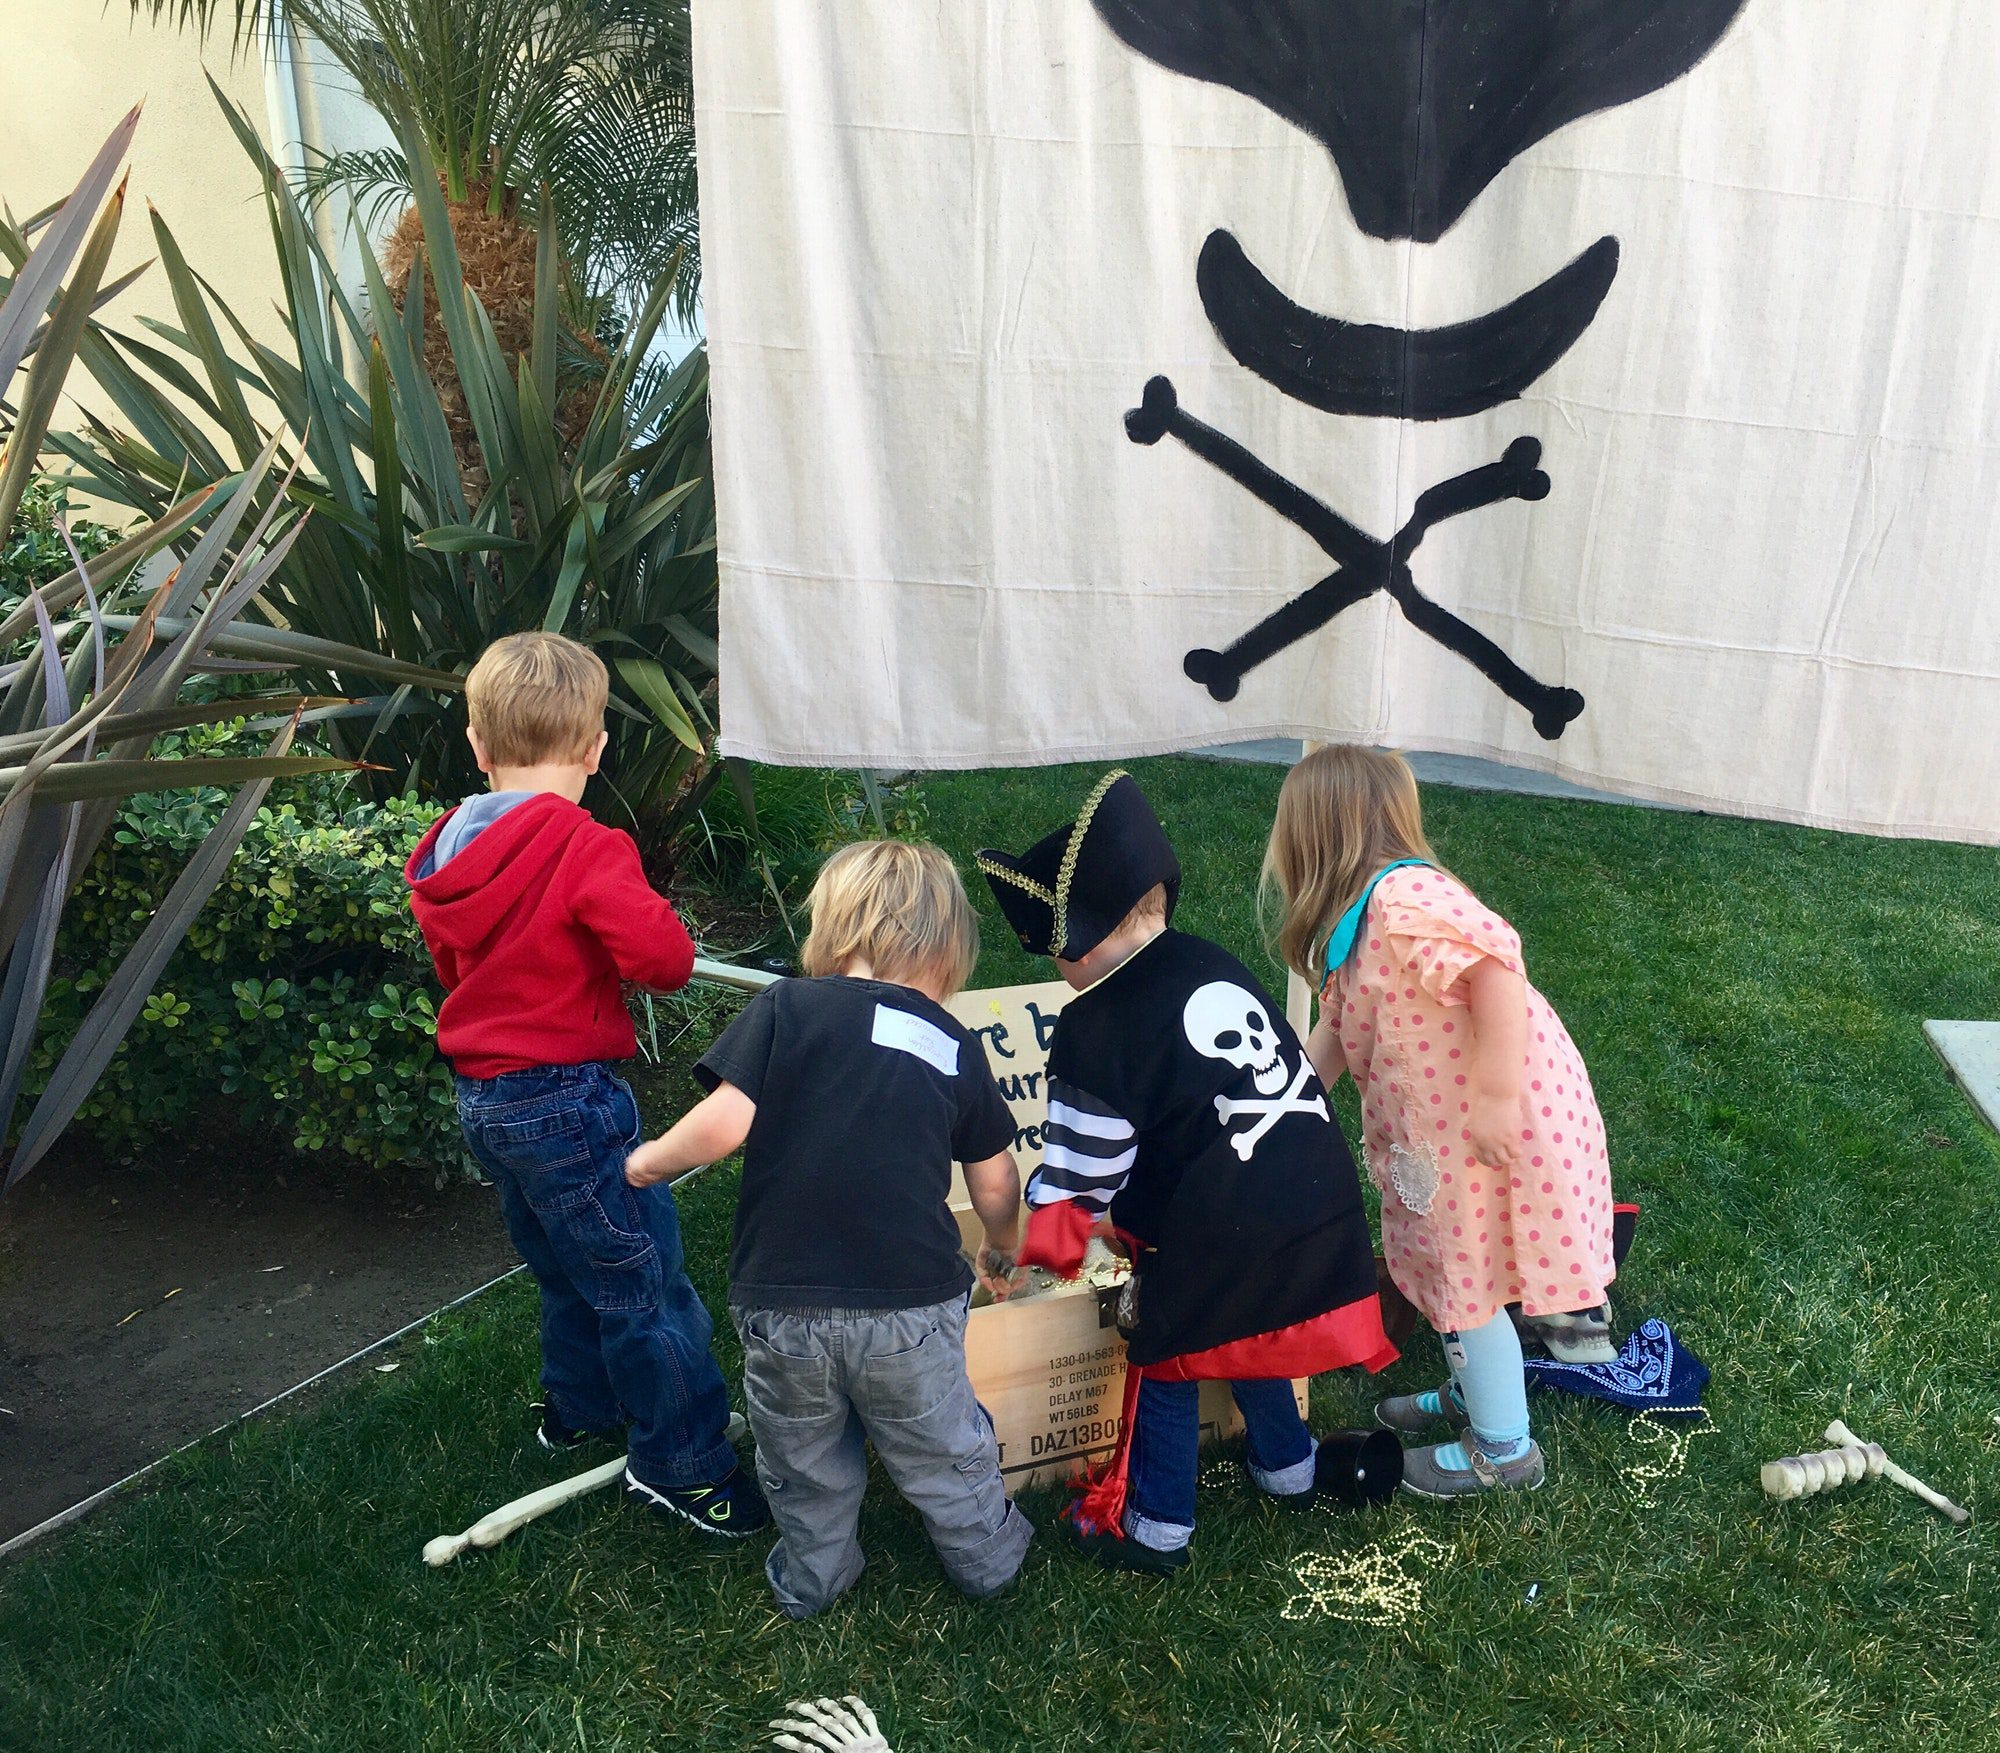 Young Kids at pirate themed birthday party